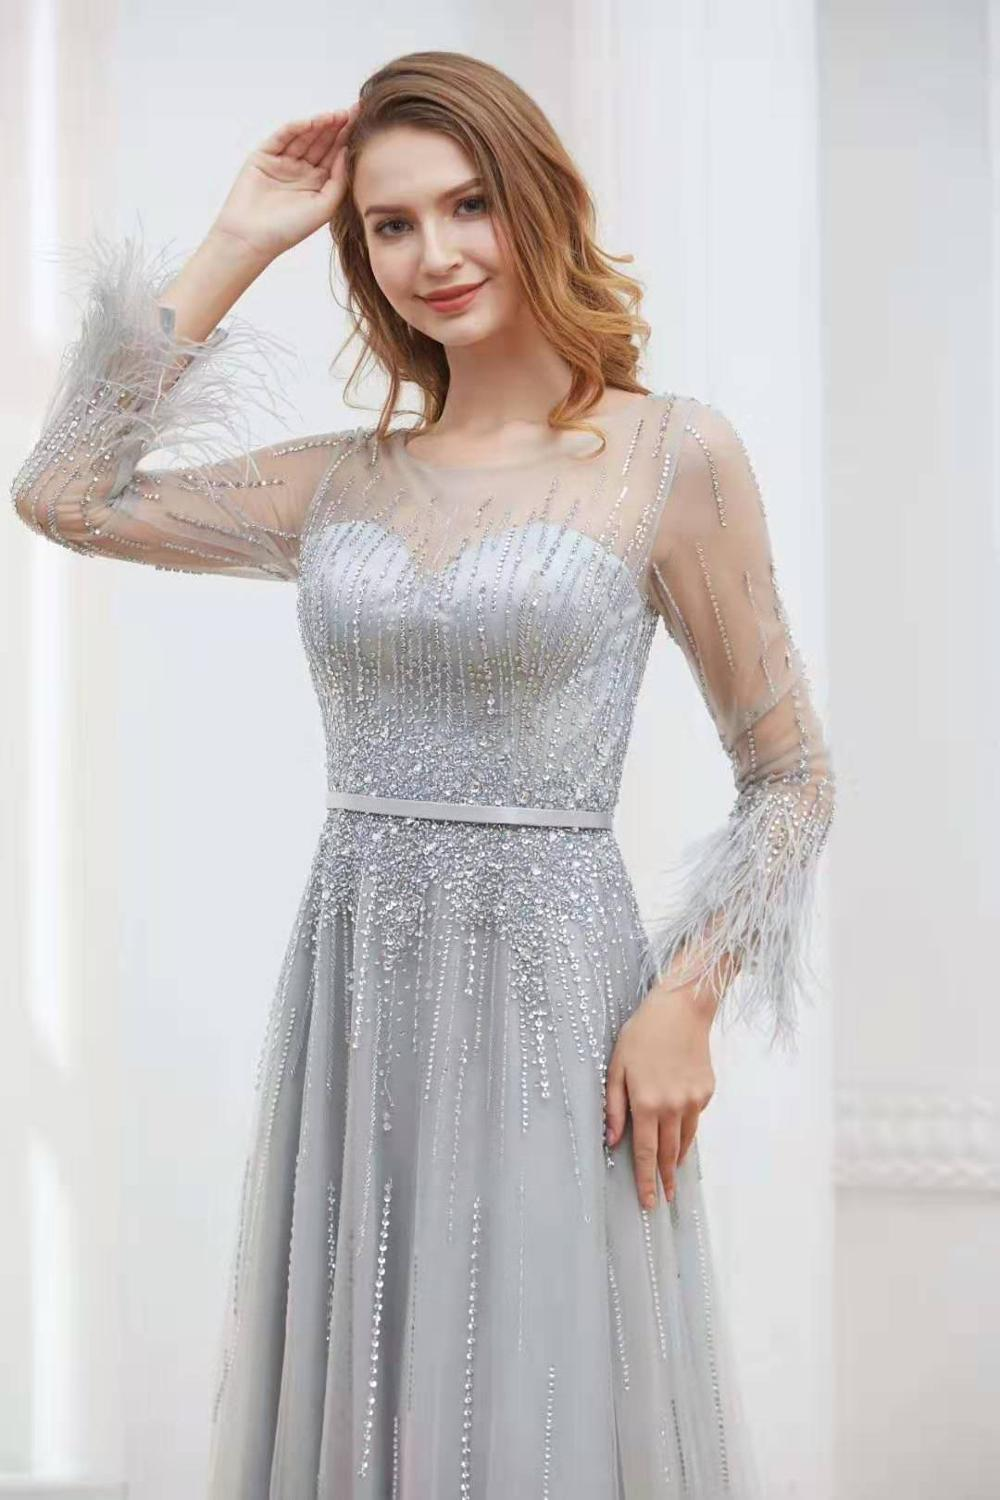 2020 Bridesmaid Dresses Prom  Formal Dress Cocktail Dresses Long Prom Dress Evening Gown  Dress Party Bride